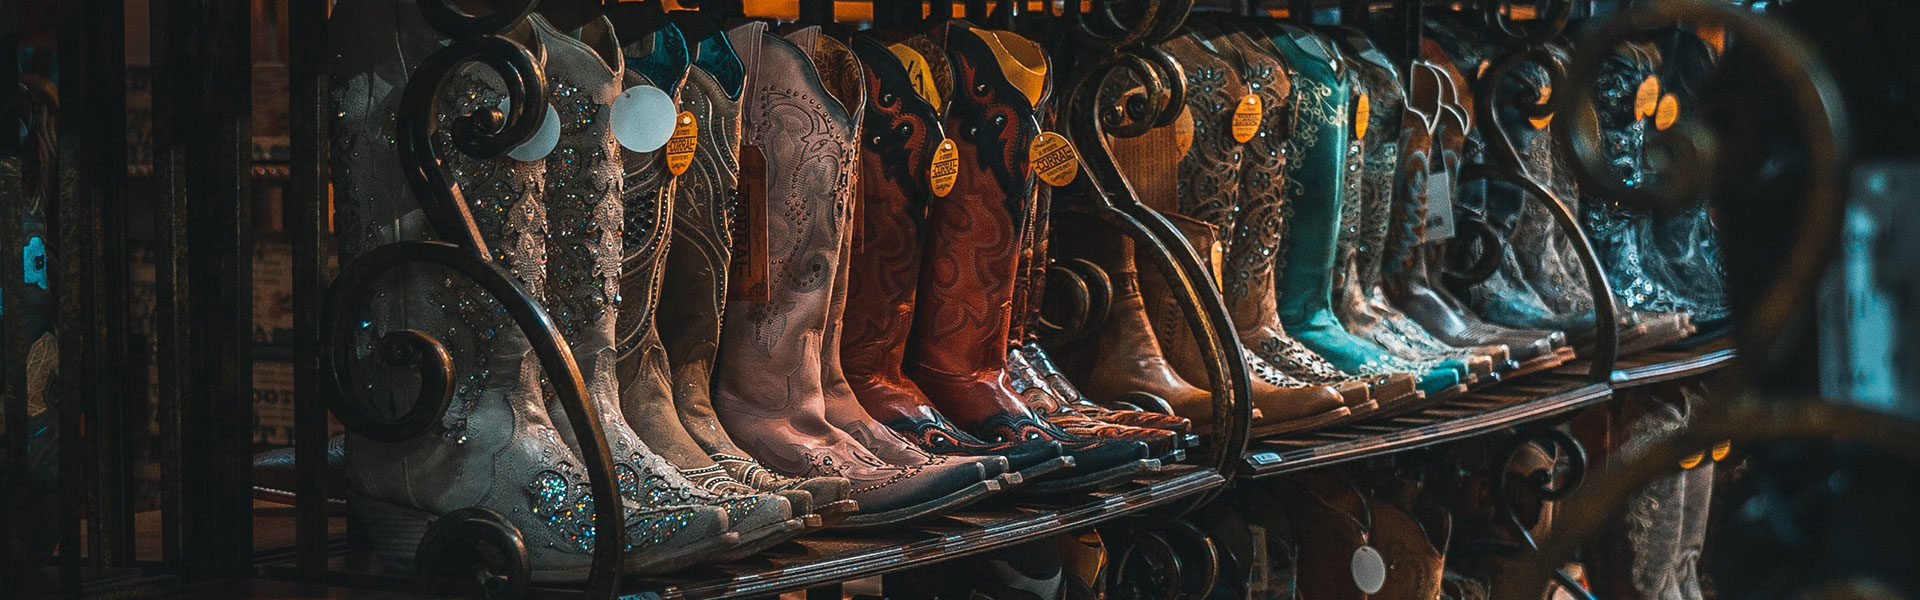 photo of cowboy boots